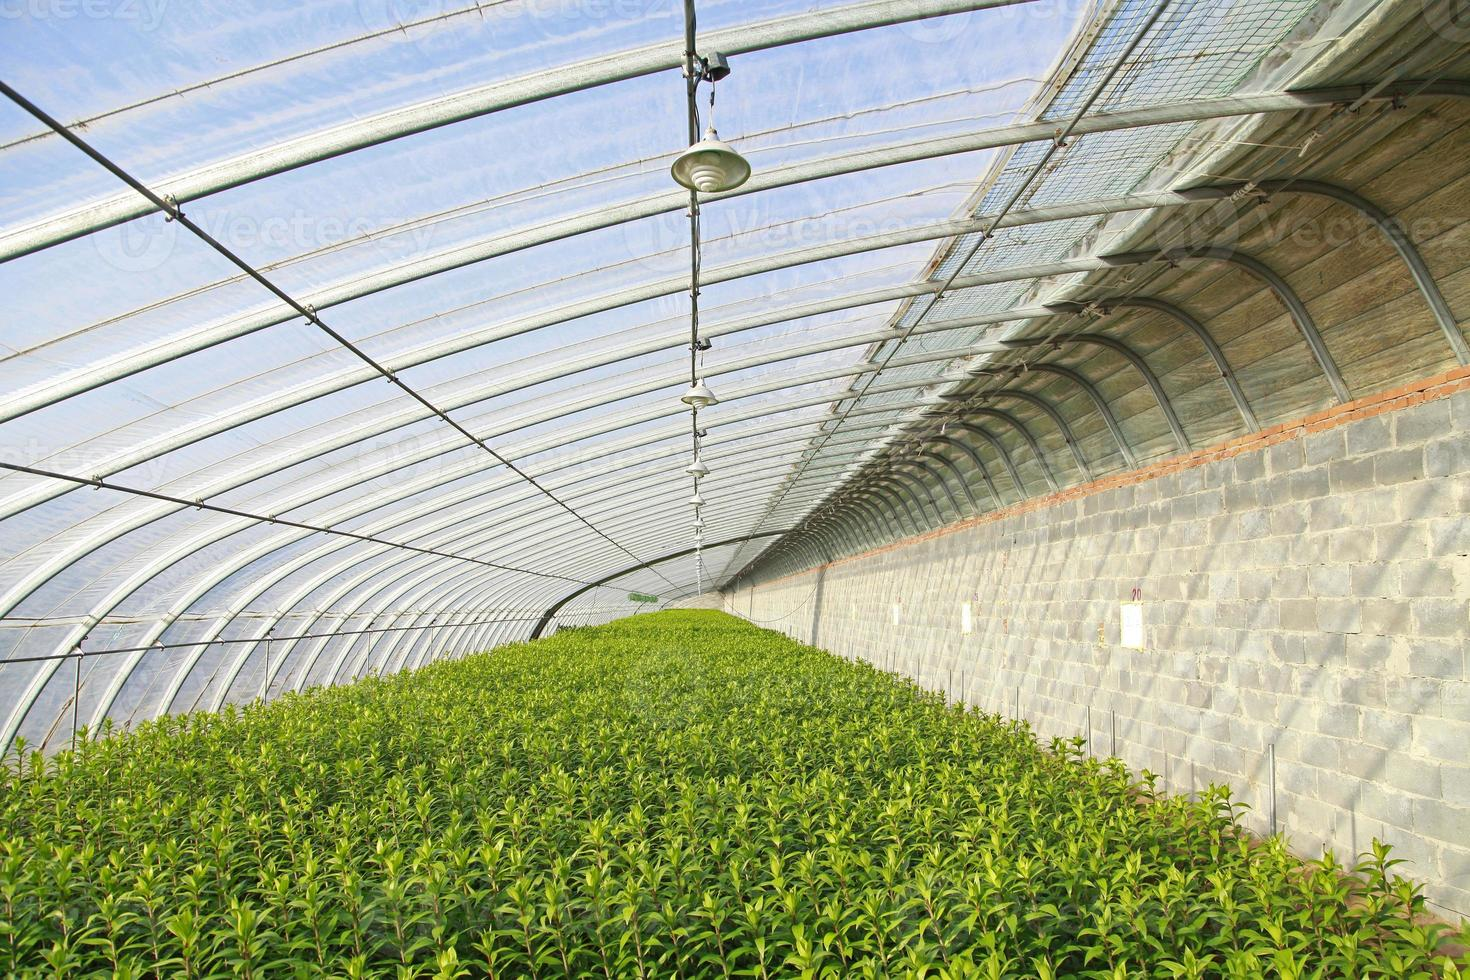 Lilies are planted in greenhouses photo